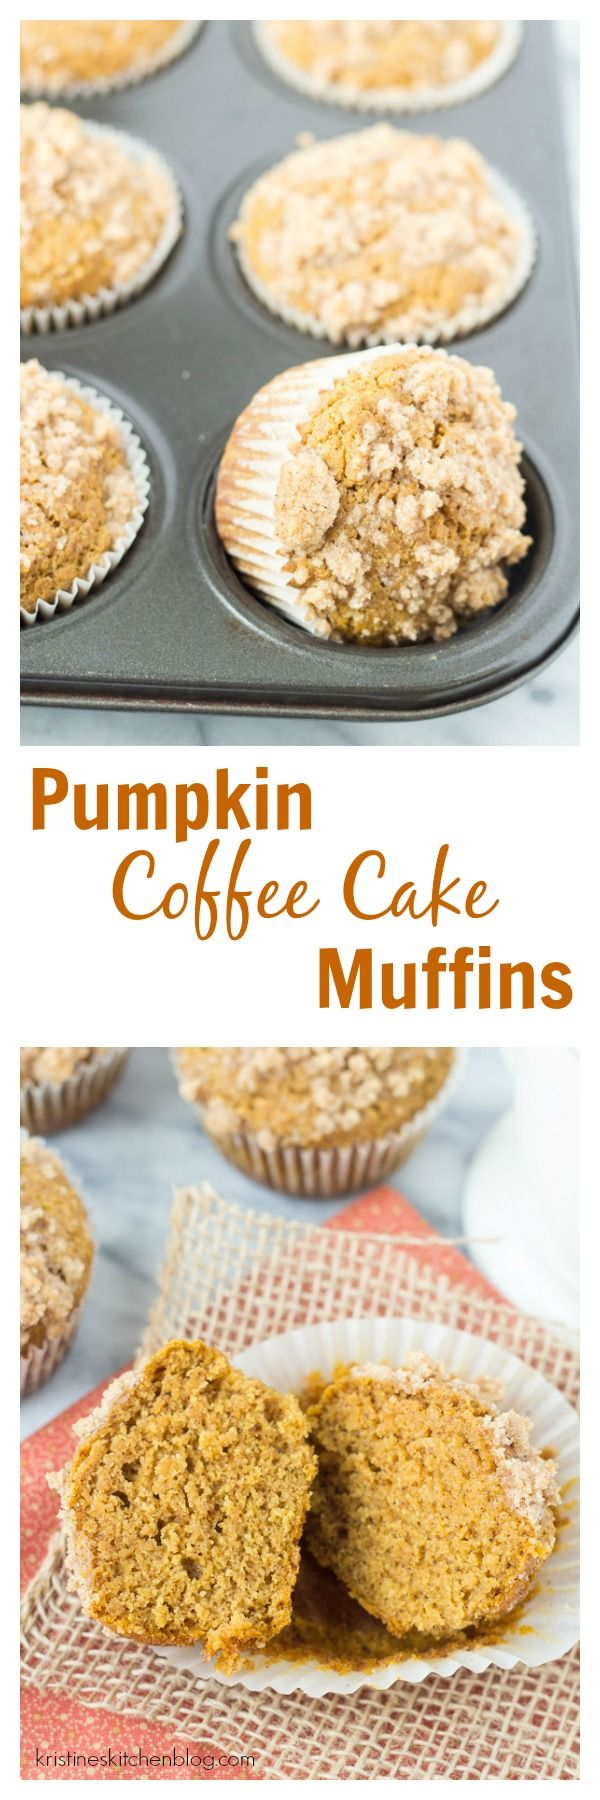 Healthier Pumpkin Coffee Cake Muffins - so light, tender, and moist, and filled with fall spices!